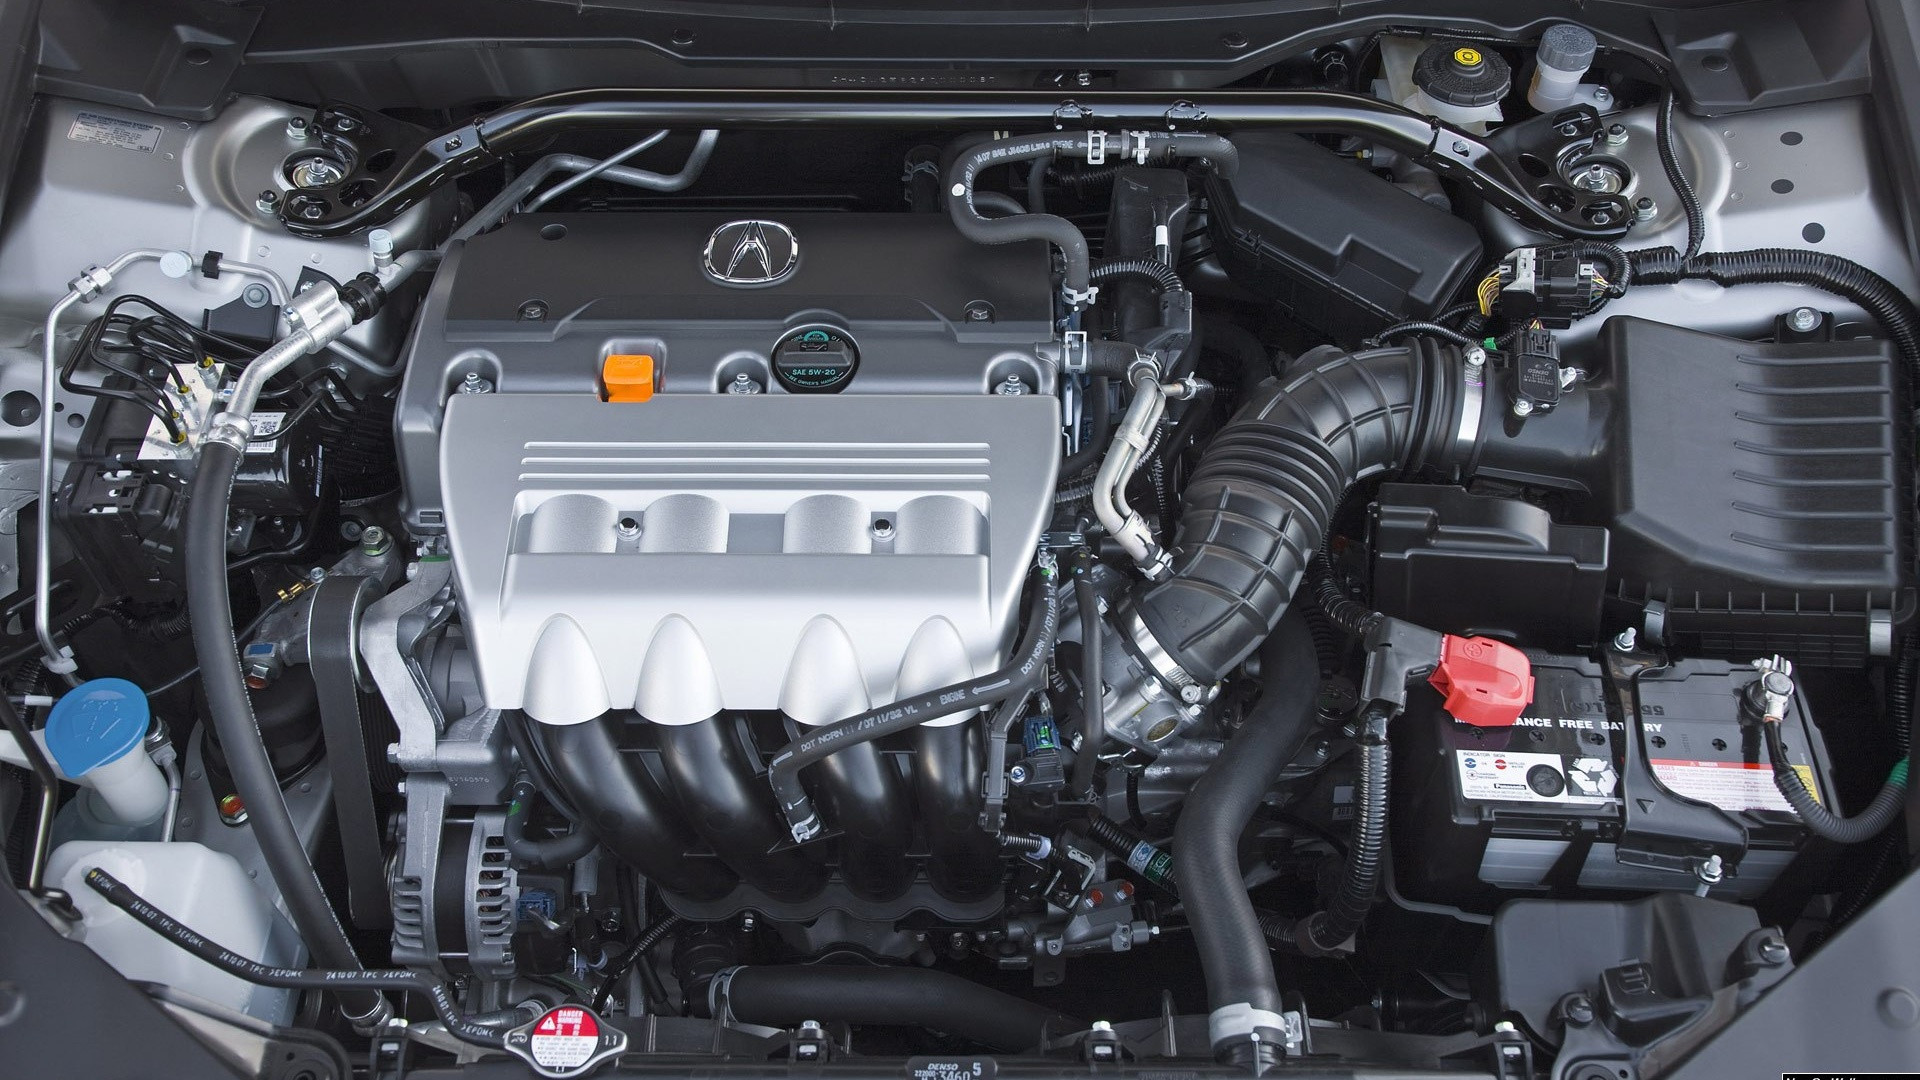 1920x1080 2009 Acura Tsx Engine, cars